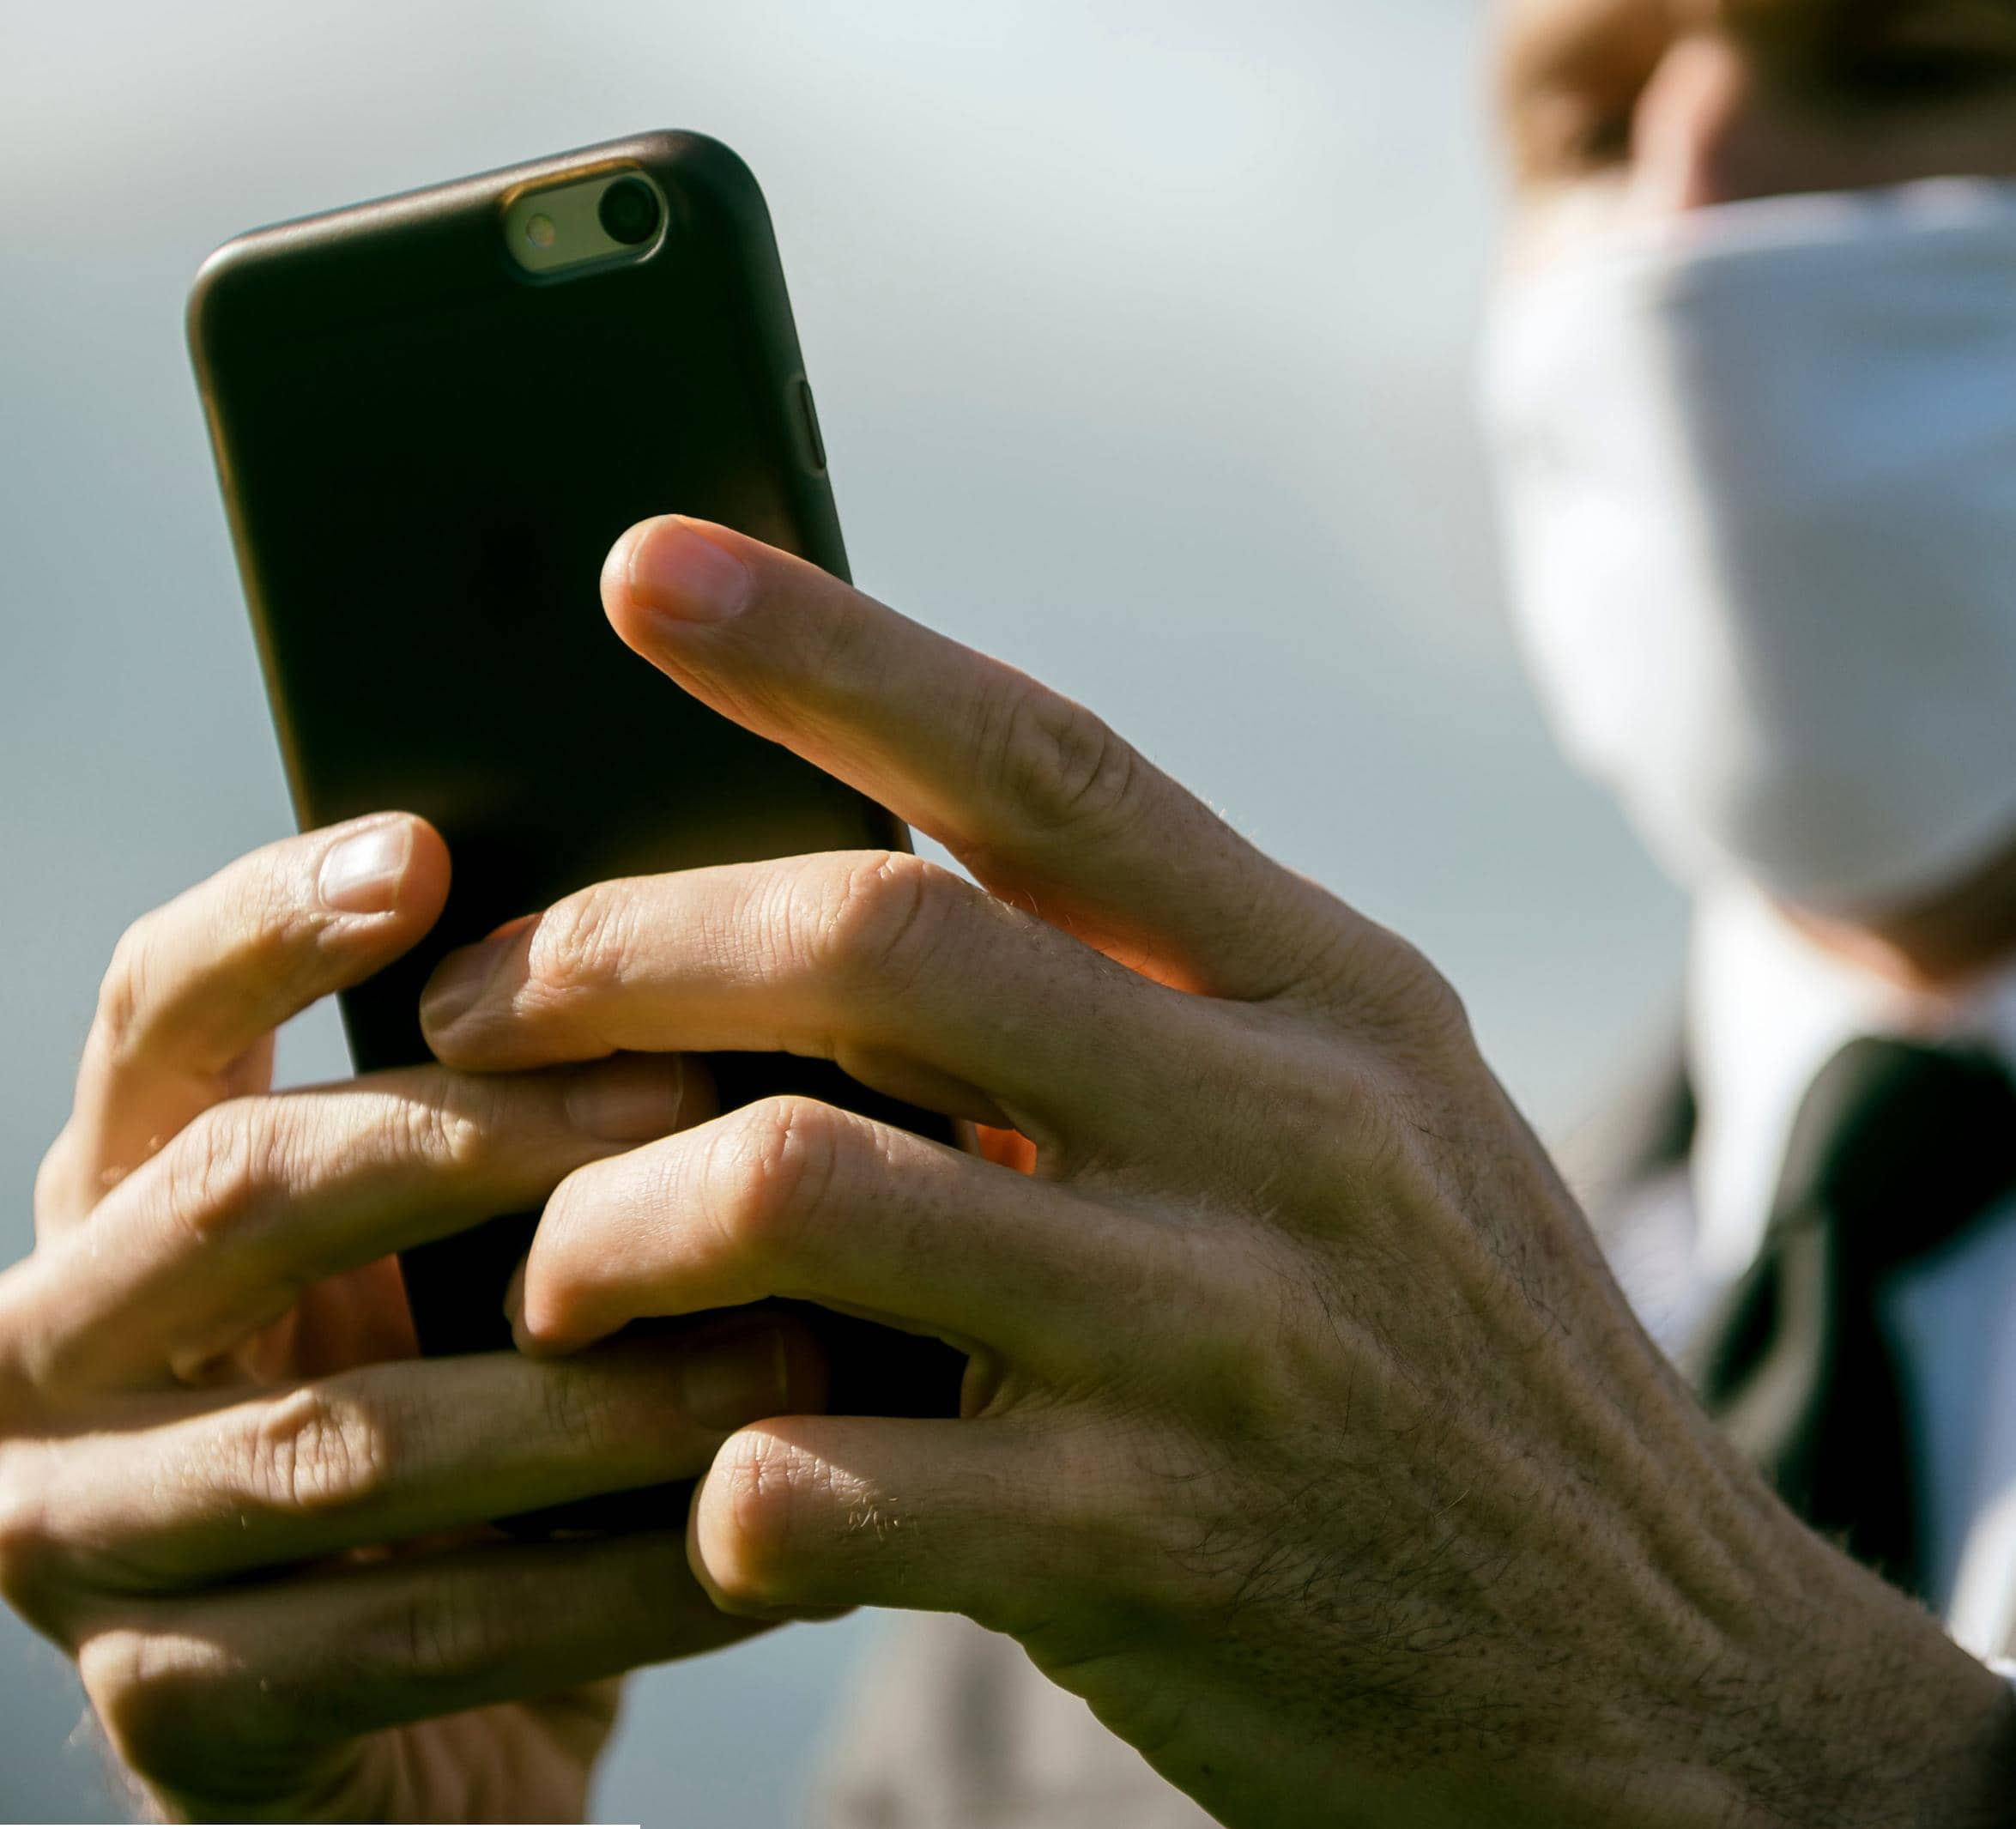 MTA ASKS APPLE'S HELP TO SOLVE iPHONE MASK ISSUES